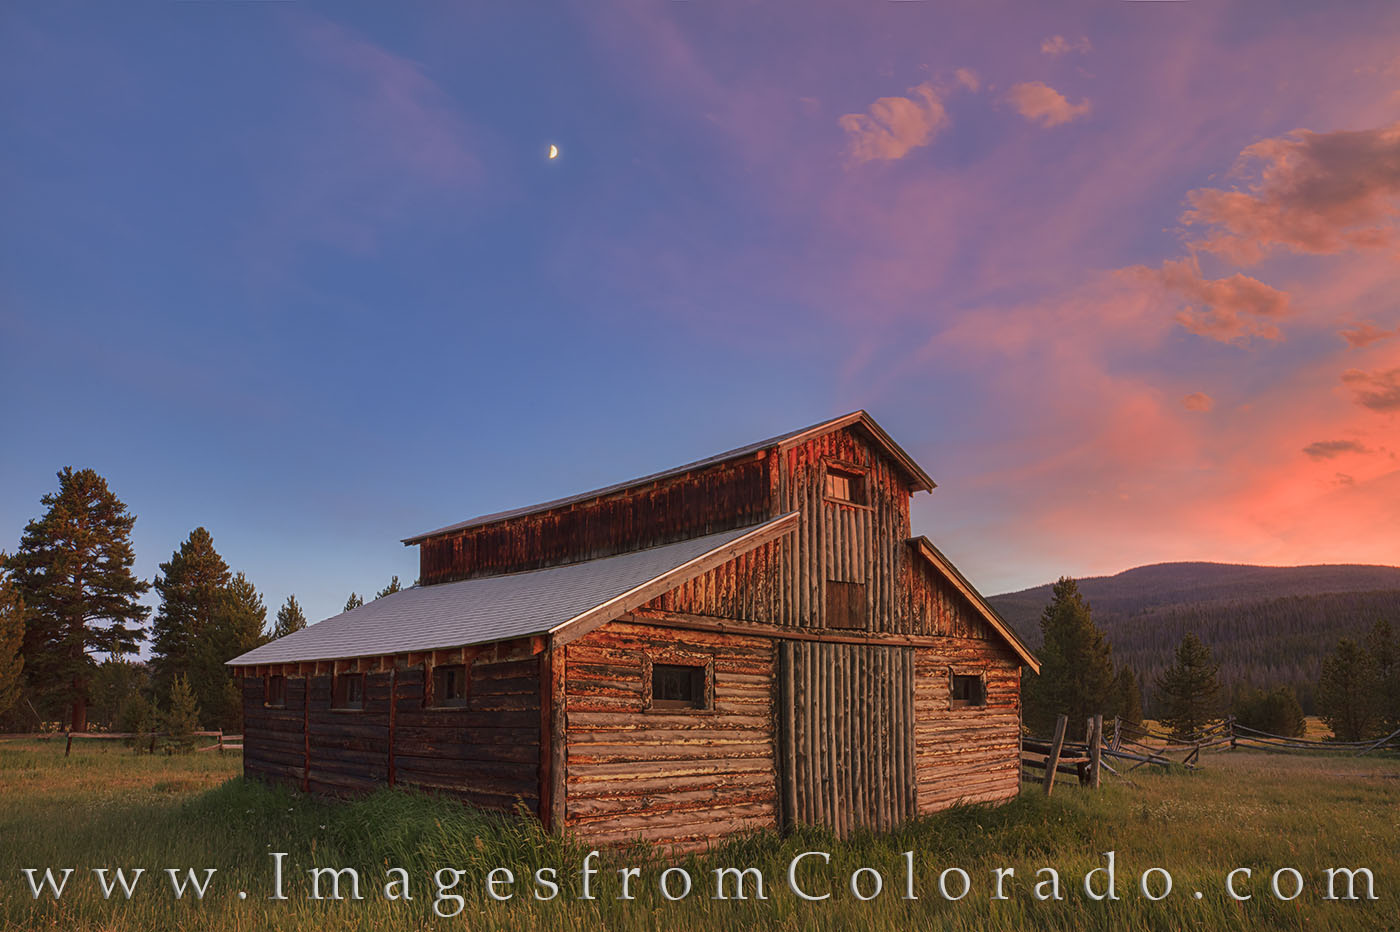 little buckaroo barn, betty dick, fred dick, rocky mountain national park, never summer mountains, Kawuneeche Valley, RMNP, sunset, summer, evening, barn, homestead, photo